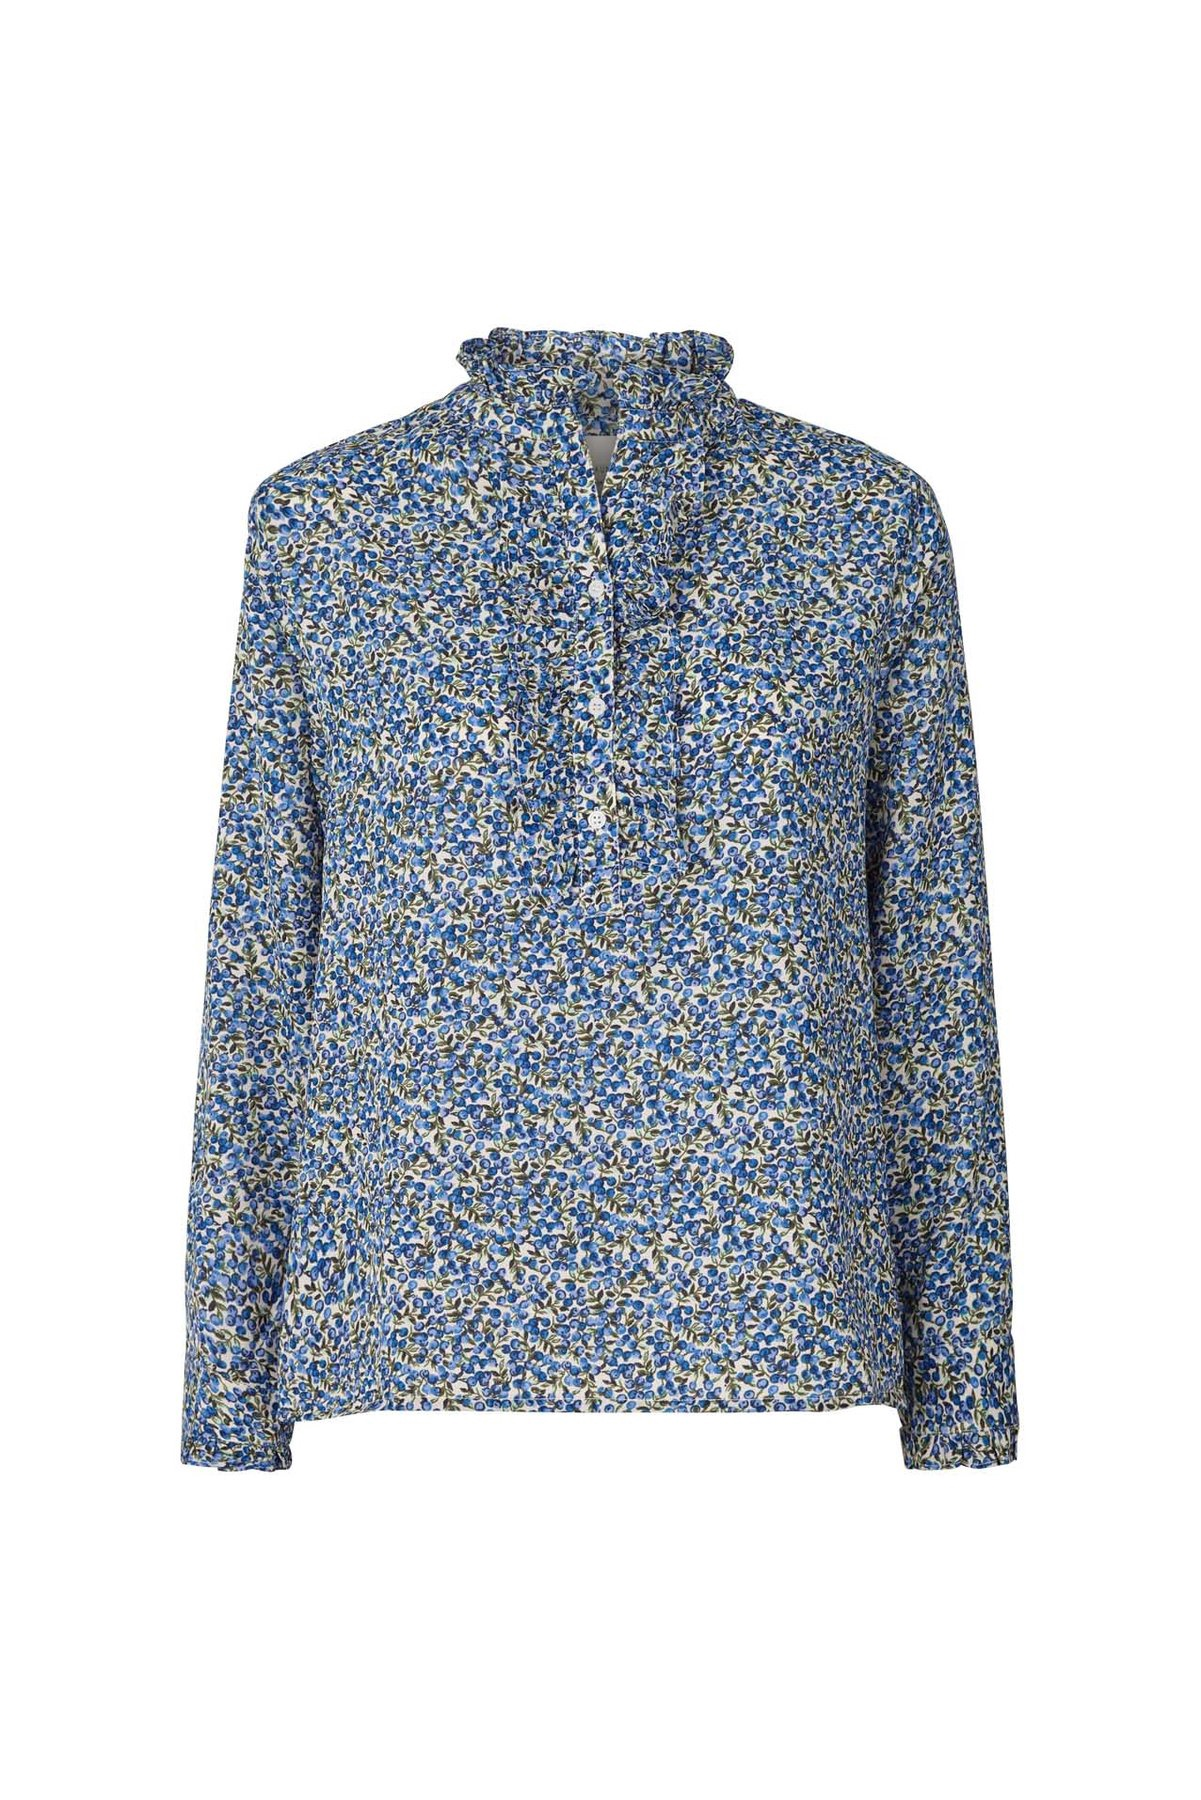 Franka Blue Flower Shirt